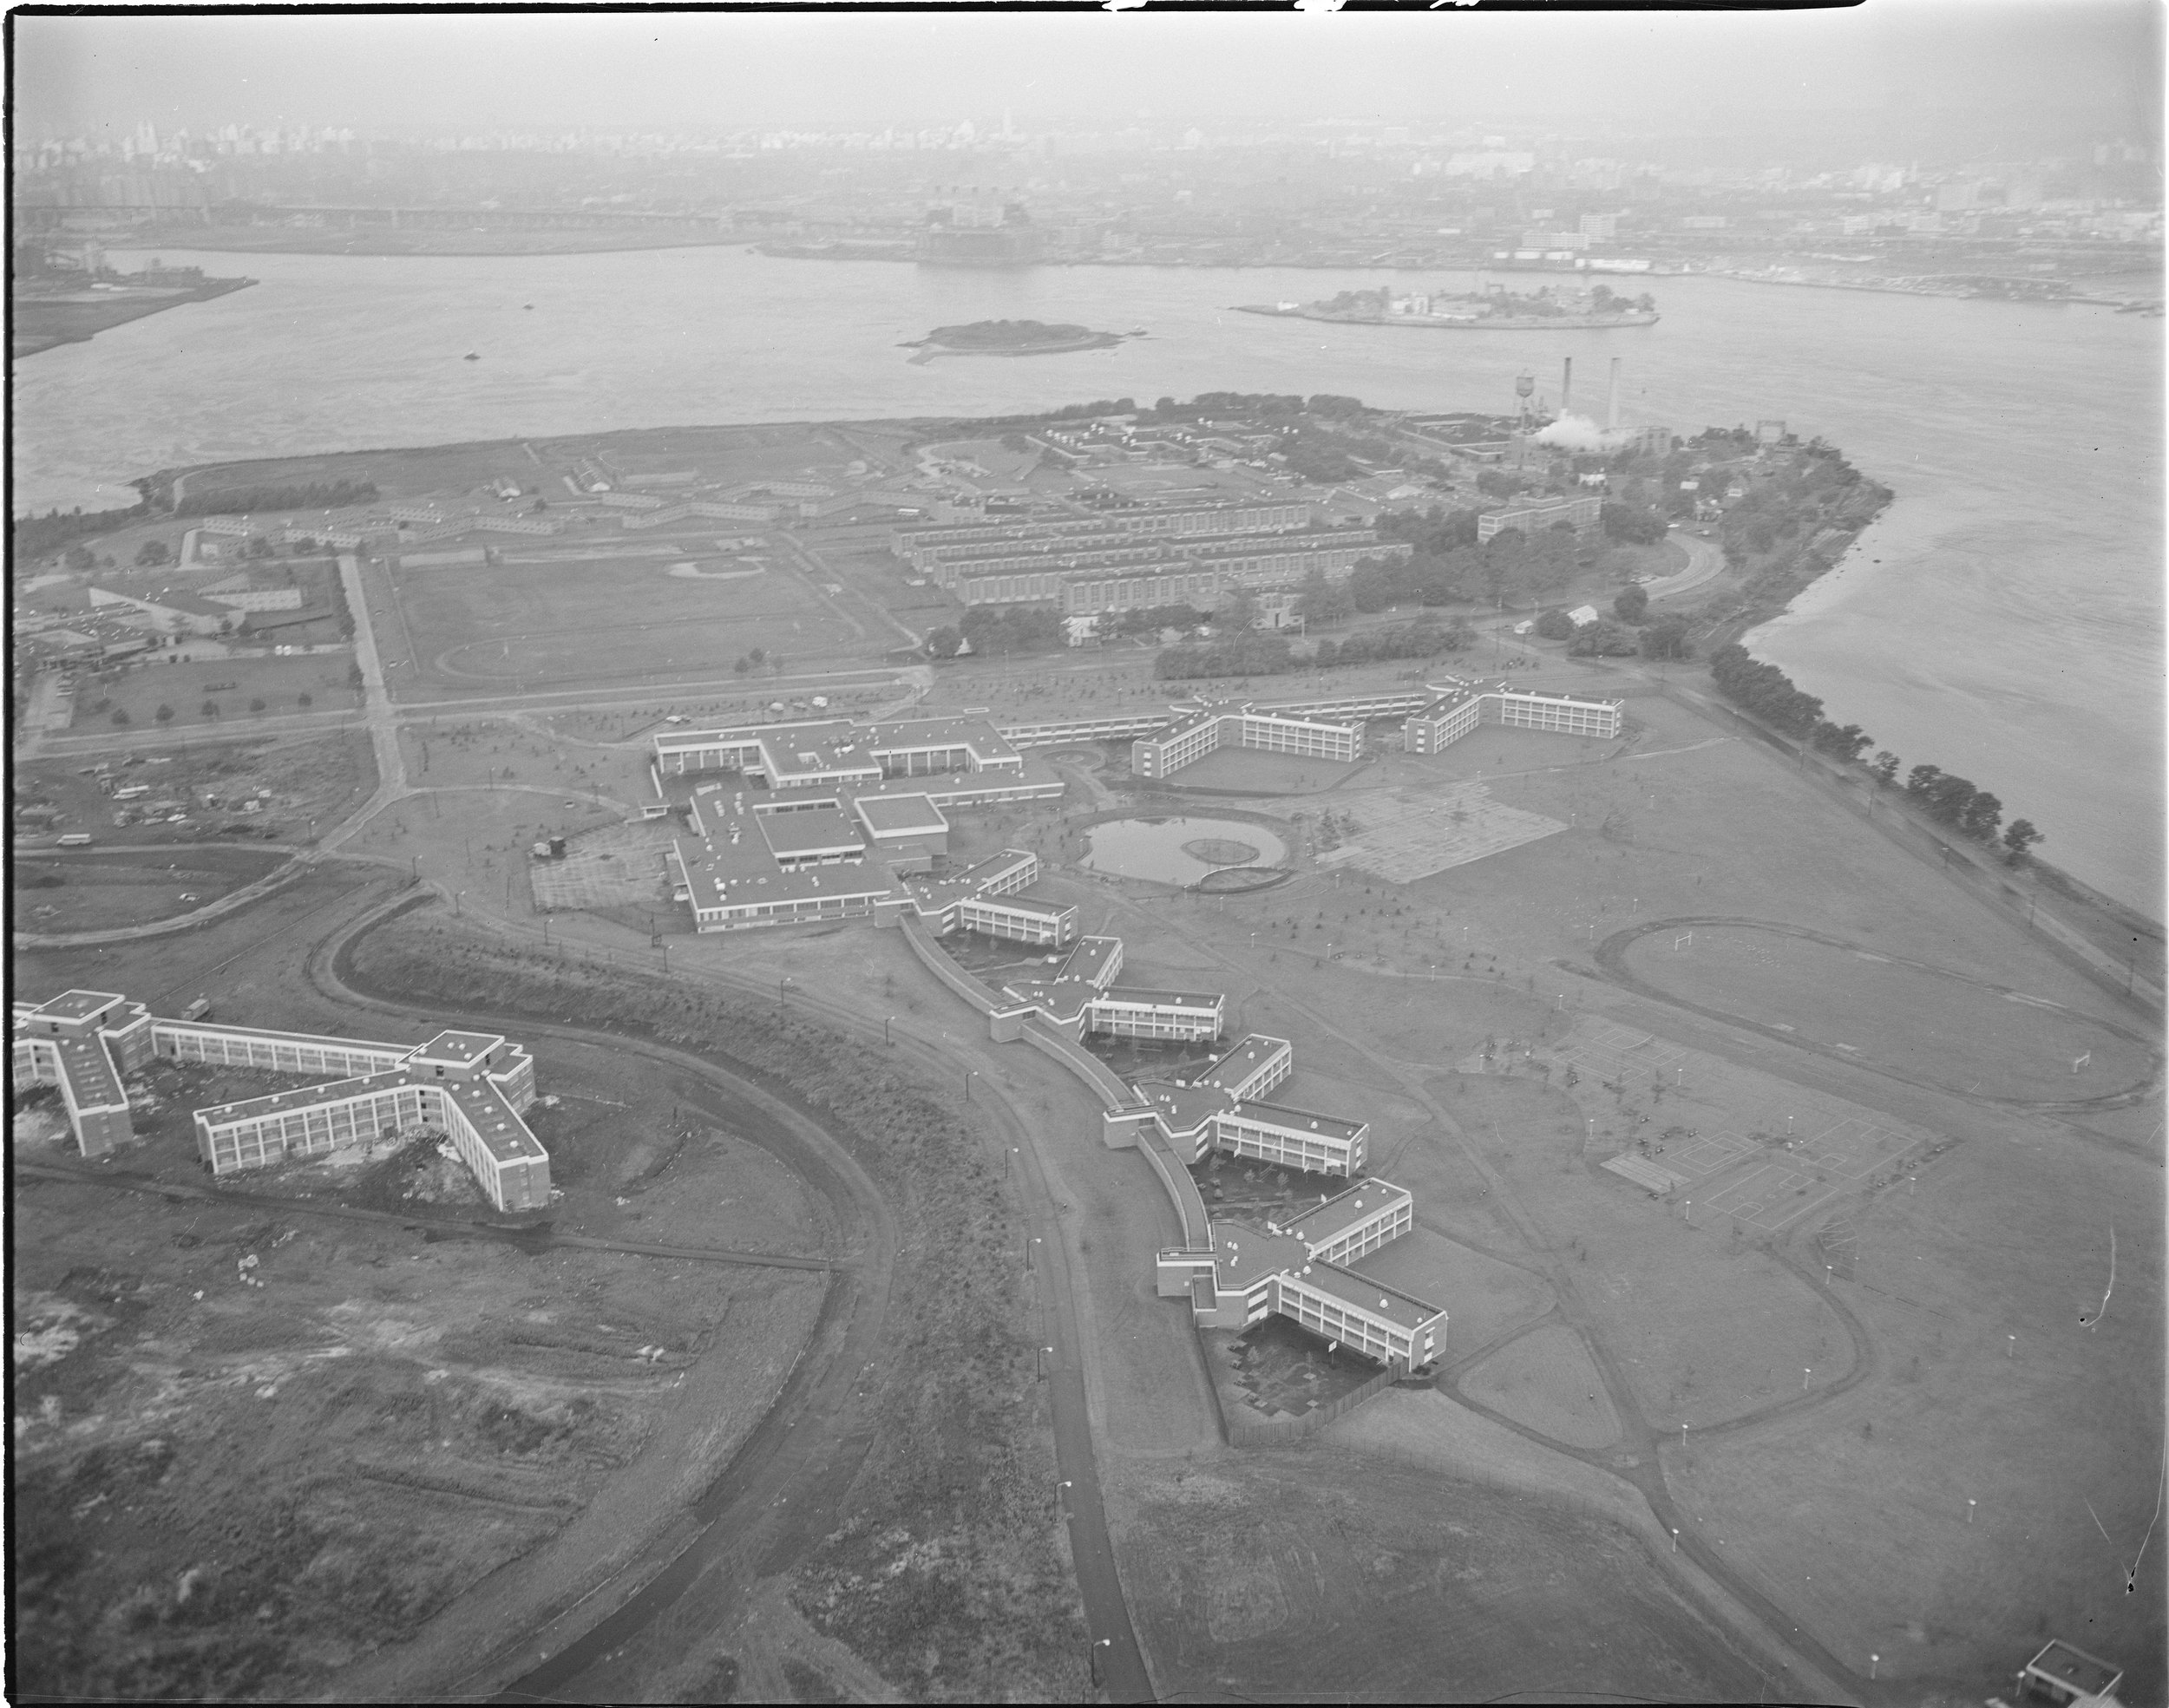 Aerial view of Rikers Island, undated